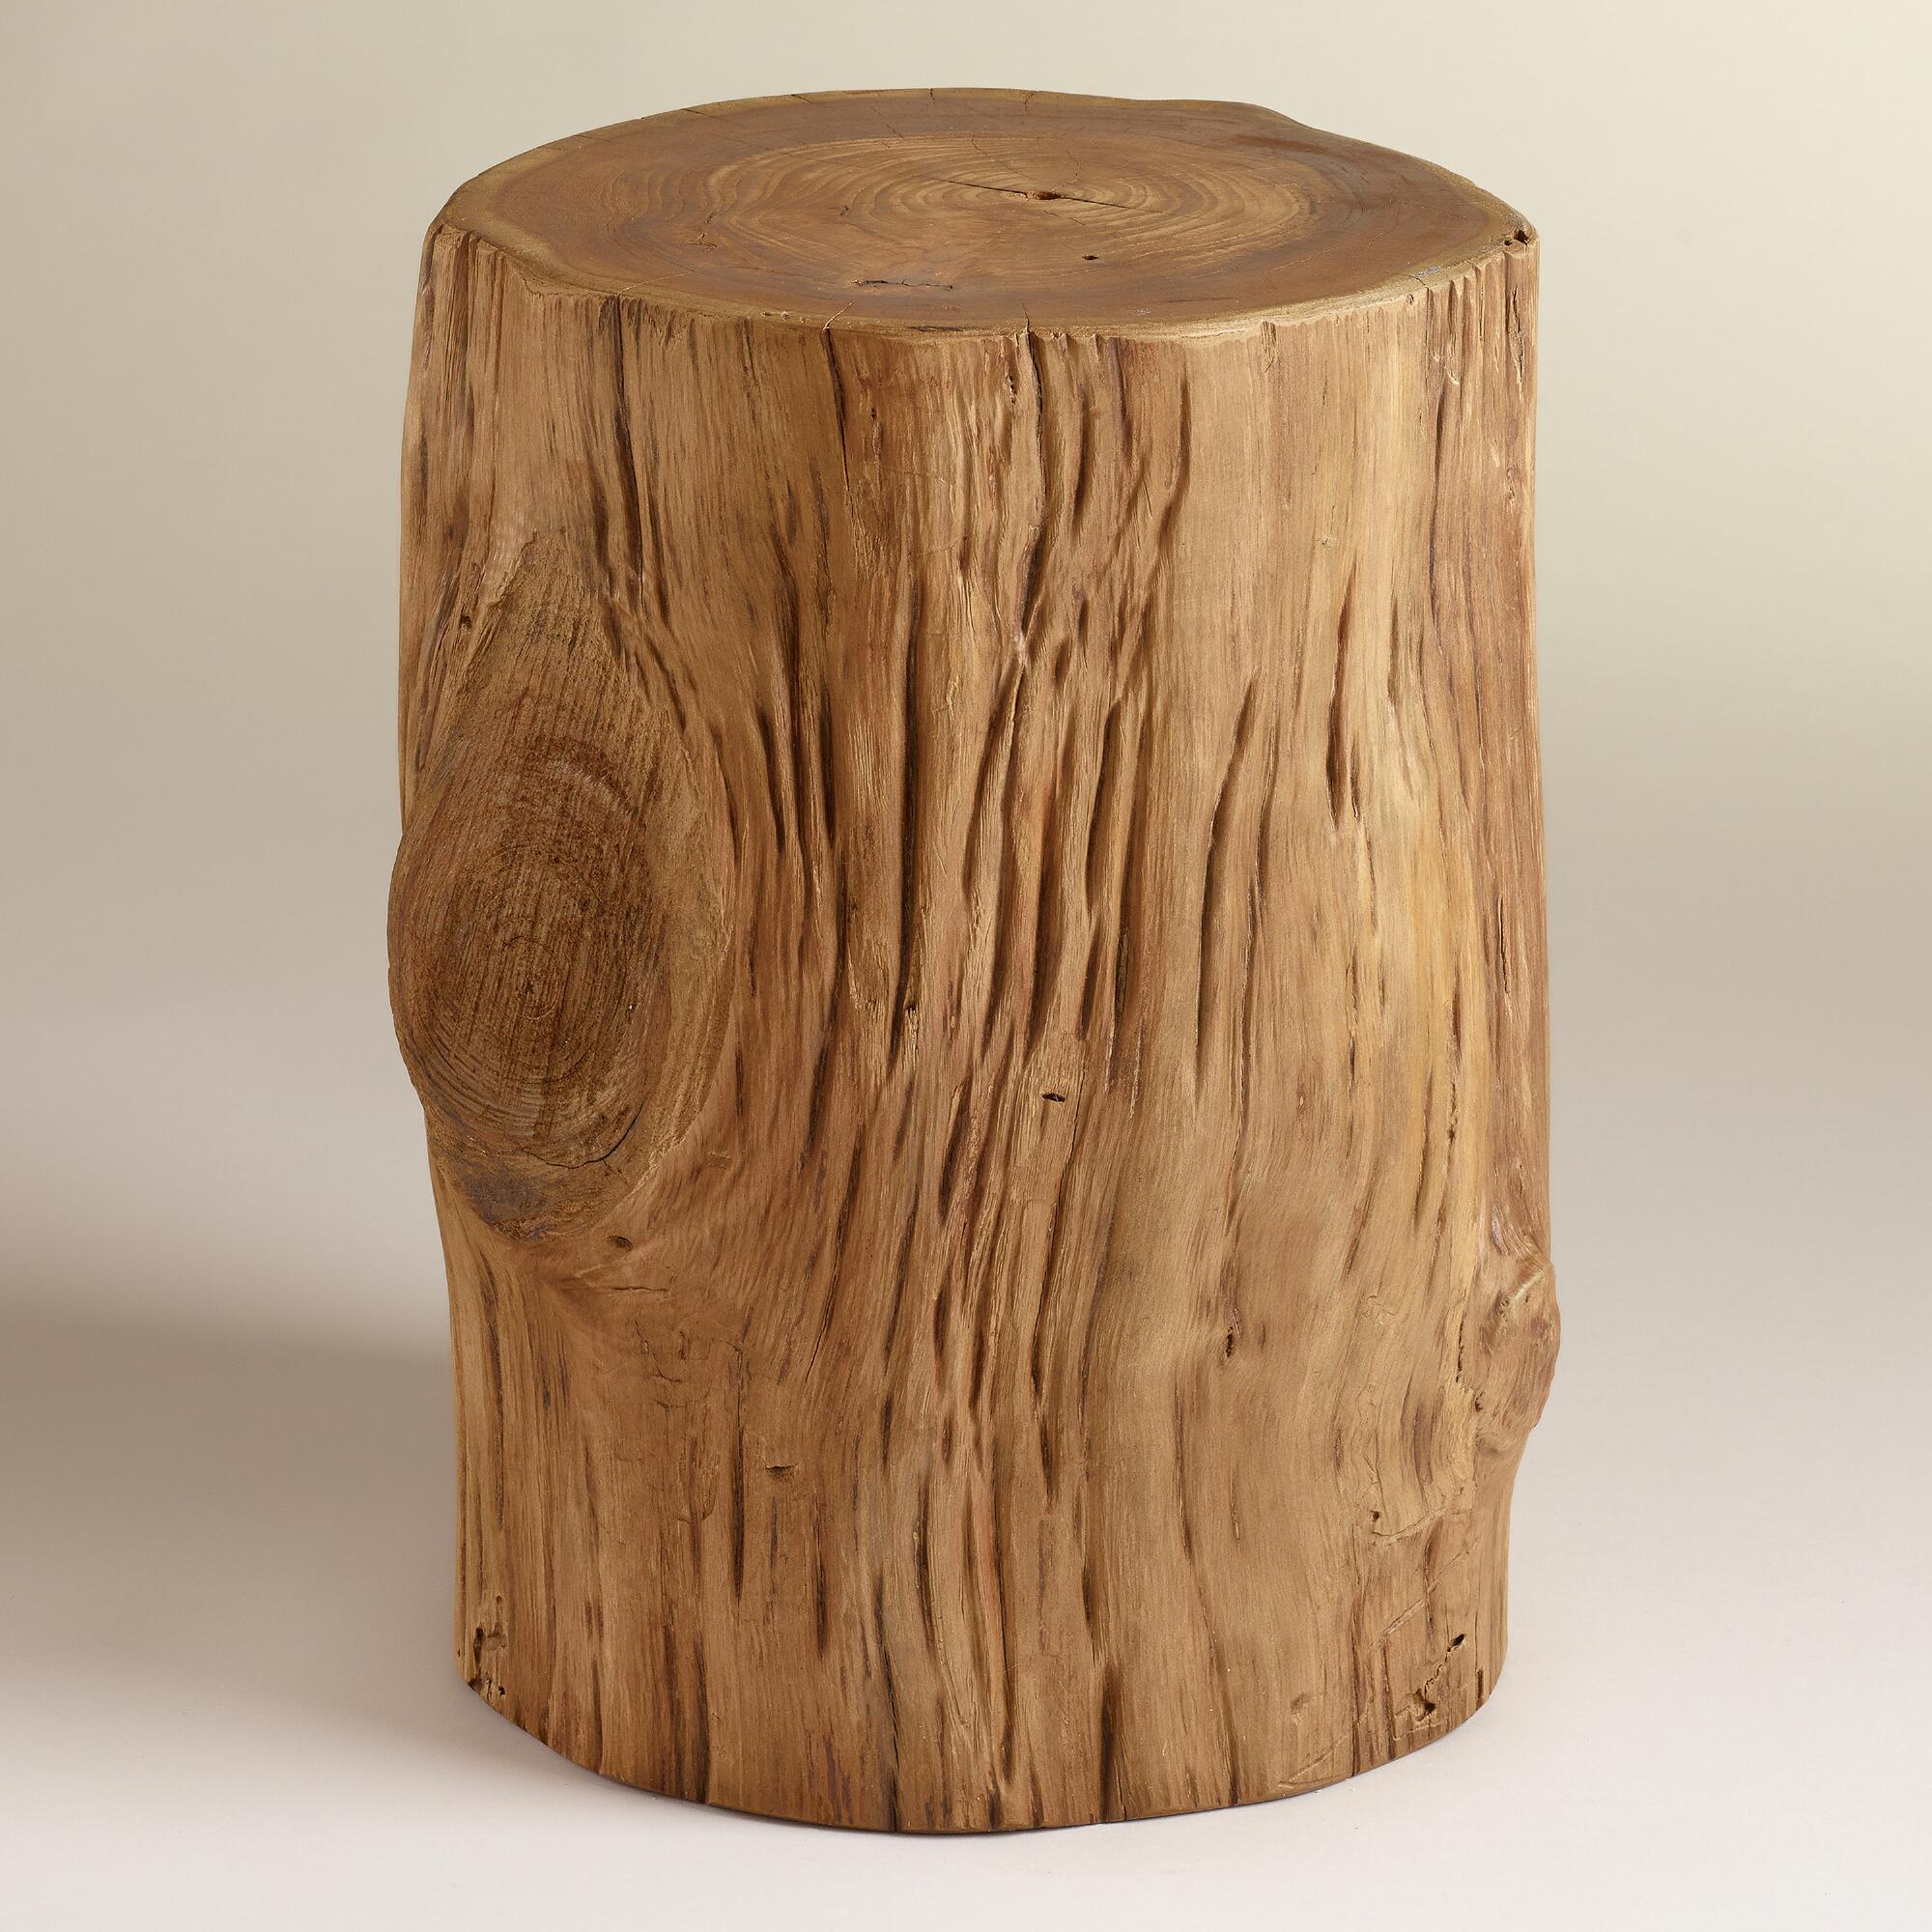 tree stump side table Teak Tree Stump Table | World Market tree stump side table